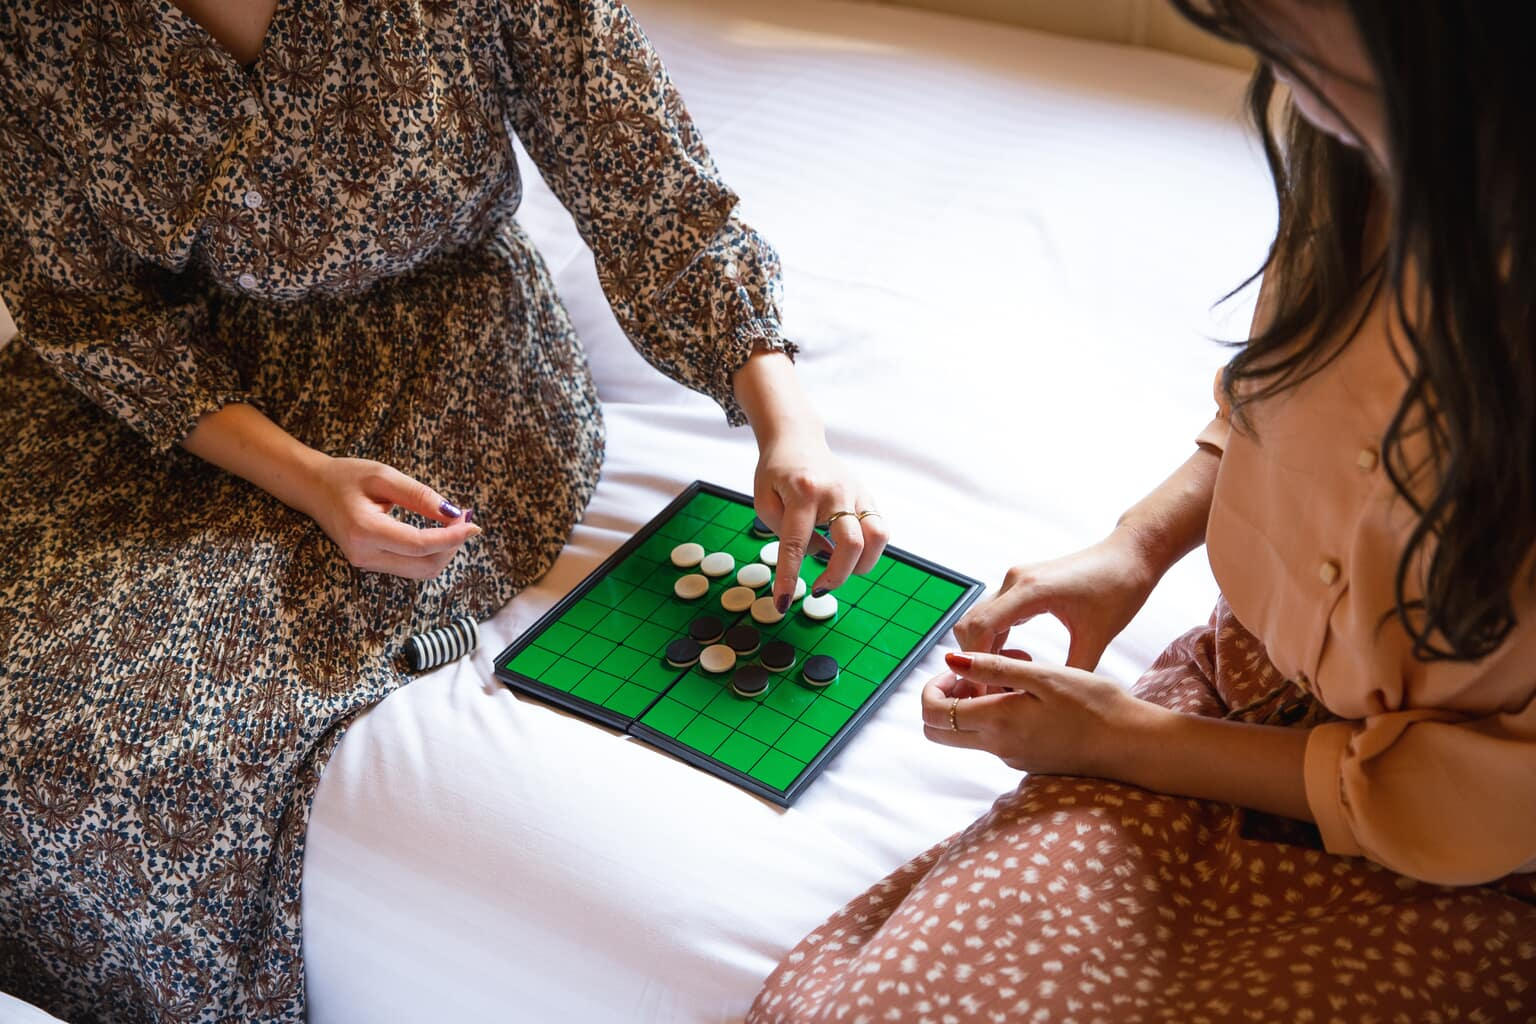 Fun & Easy Japanese Tabletop Games to Try